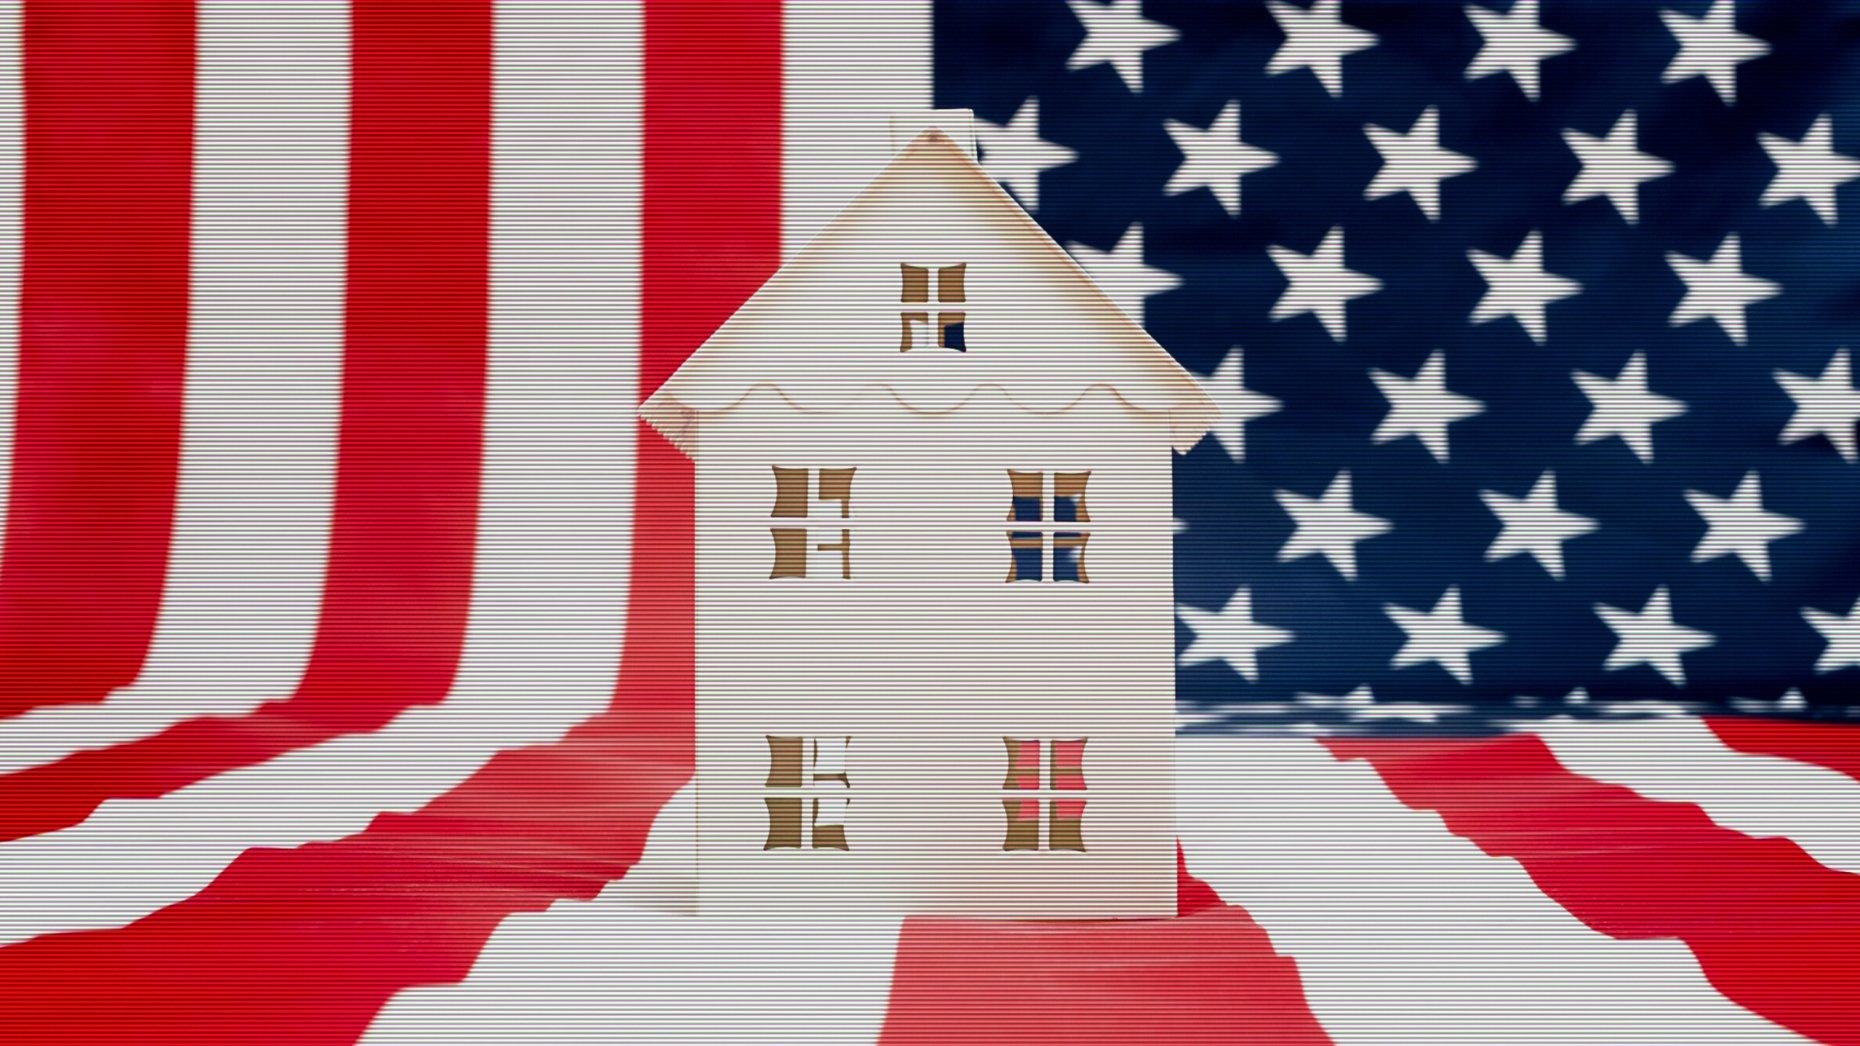 Homeownership is the greatest kind of freedom — and it should be for all